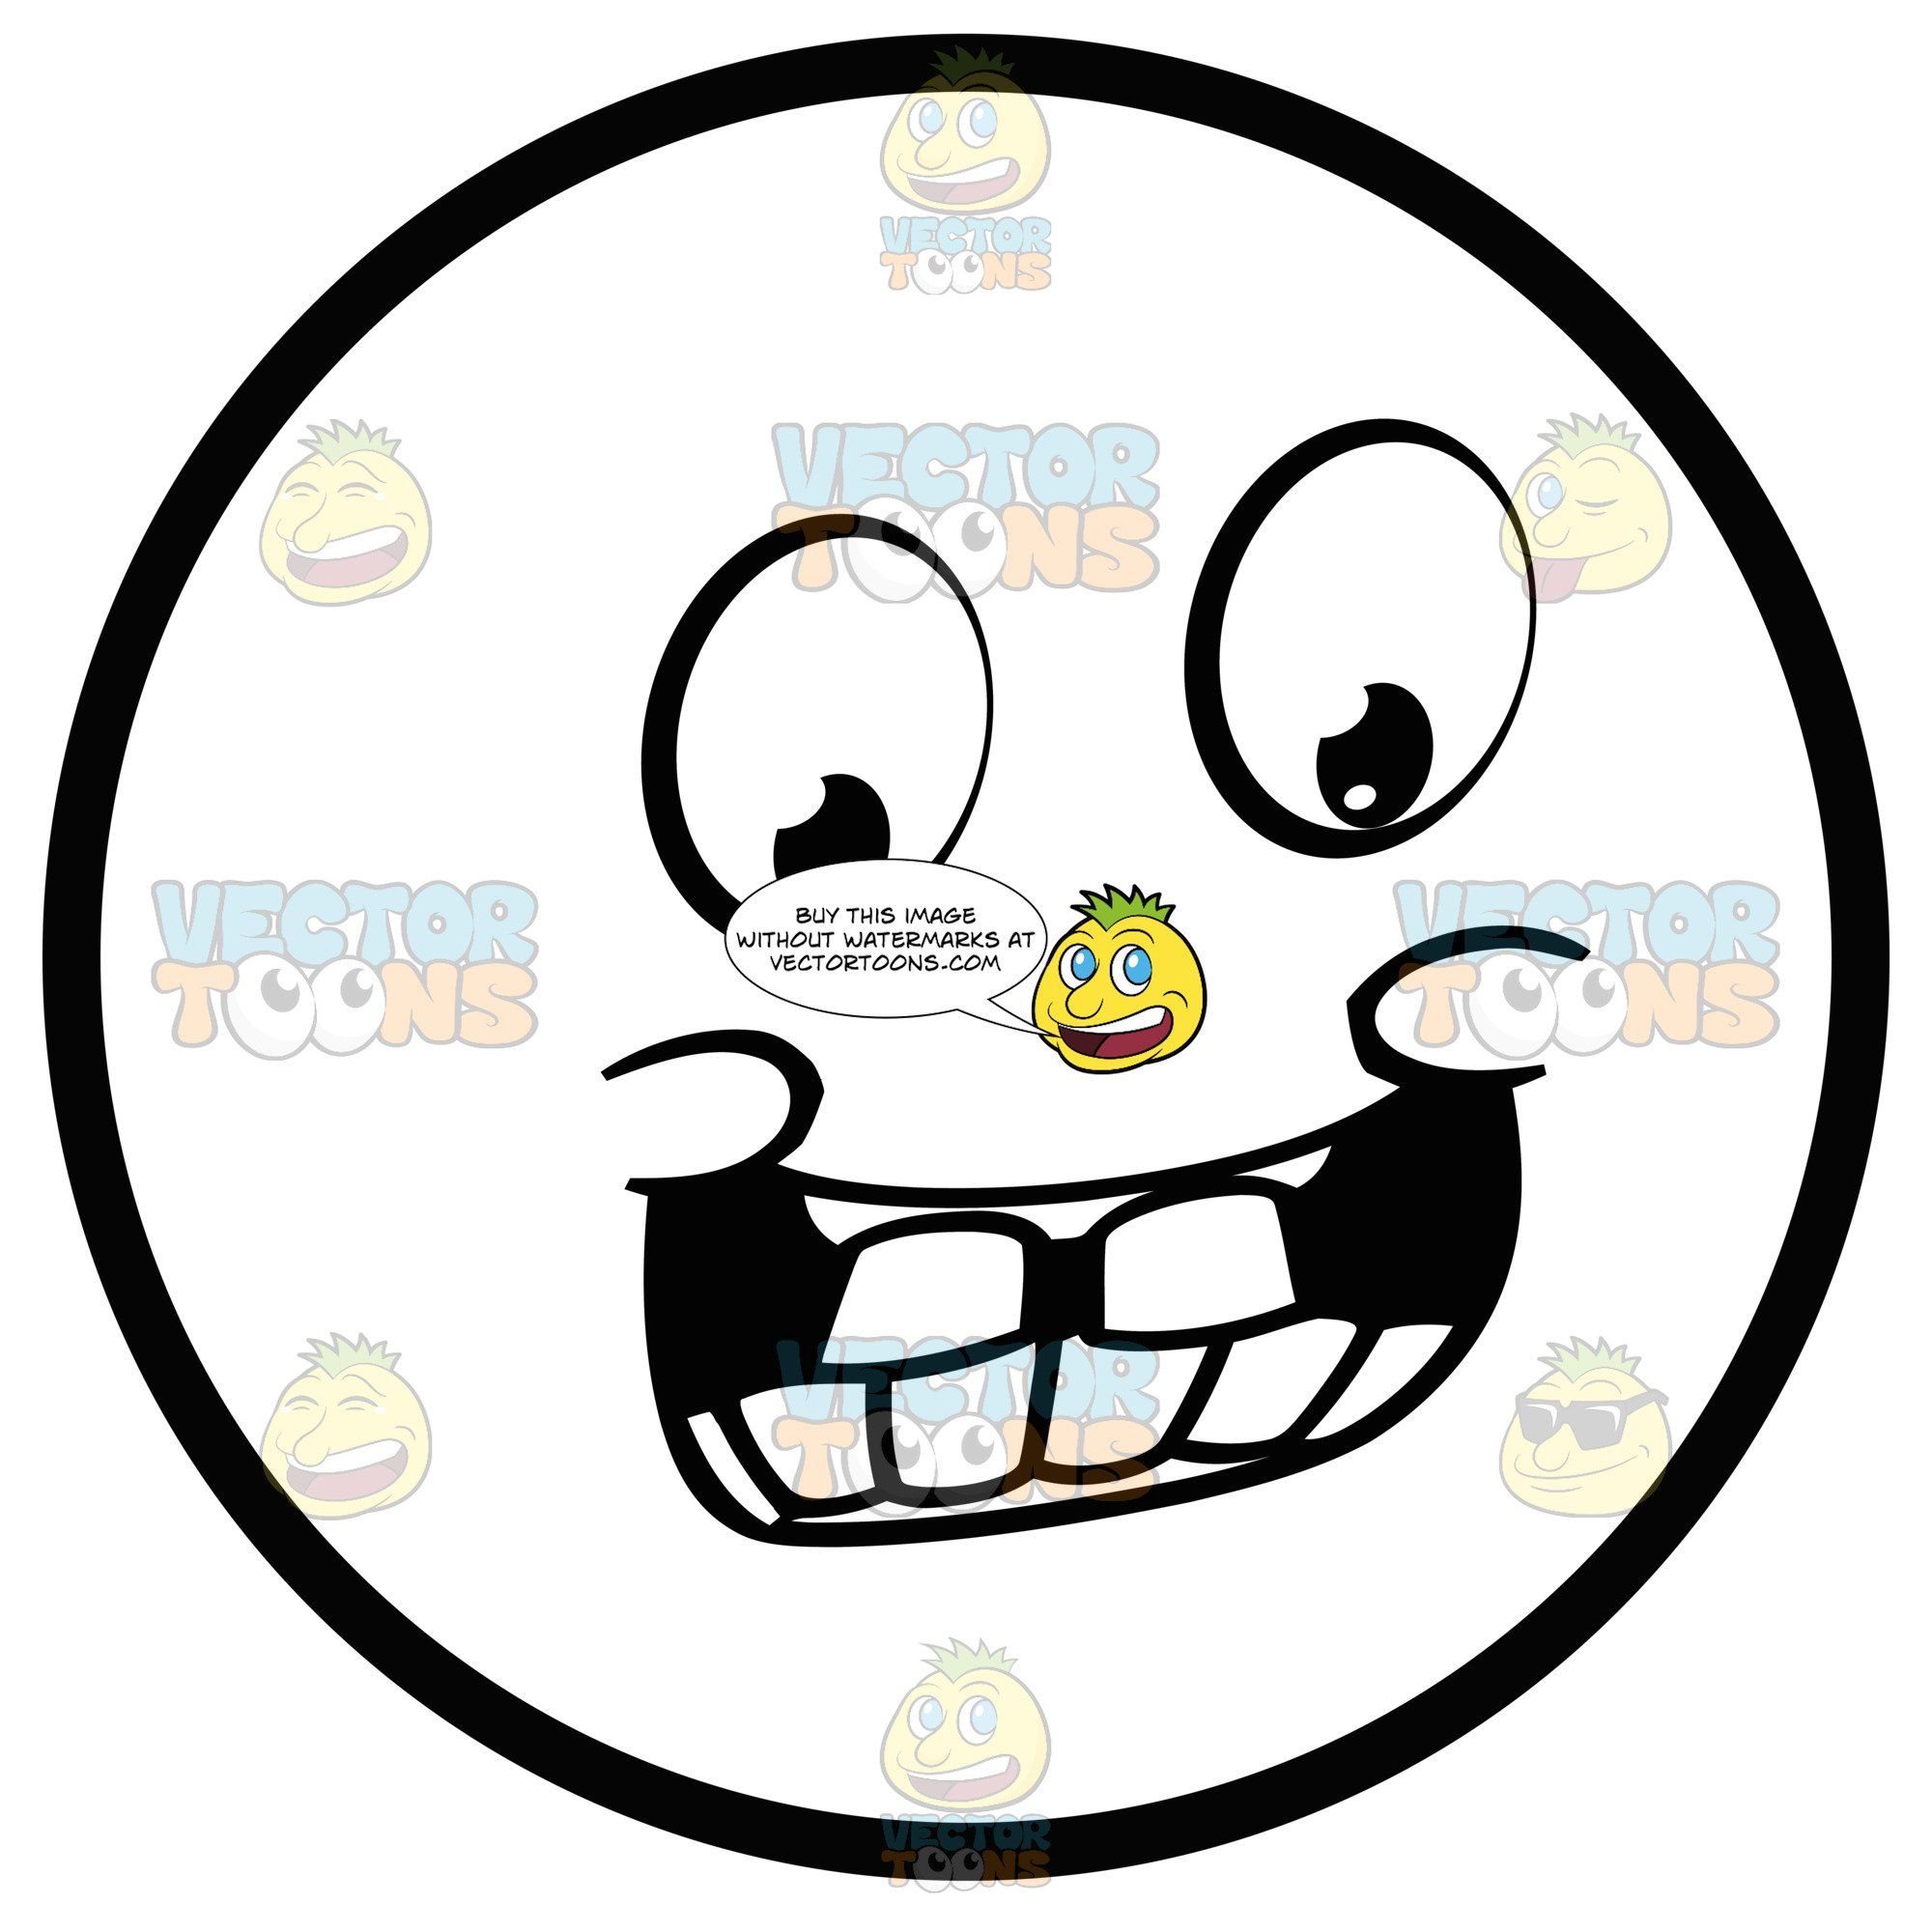 2000x2000 jolly large eyed black and white smiley face emoticon with pudgy